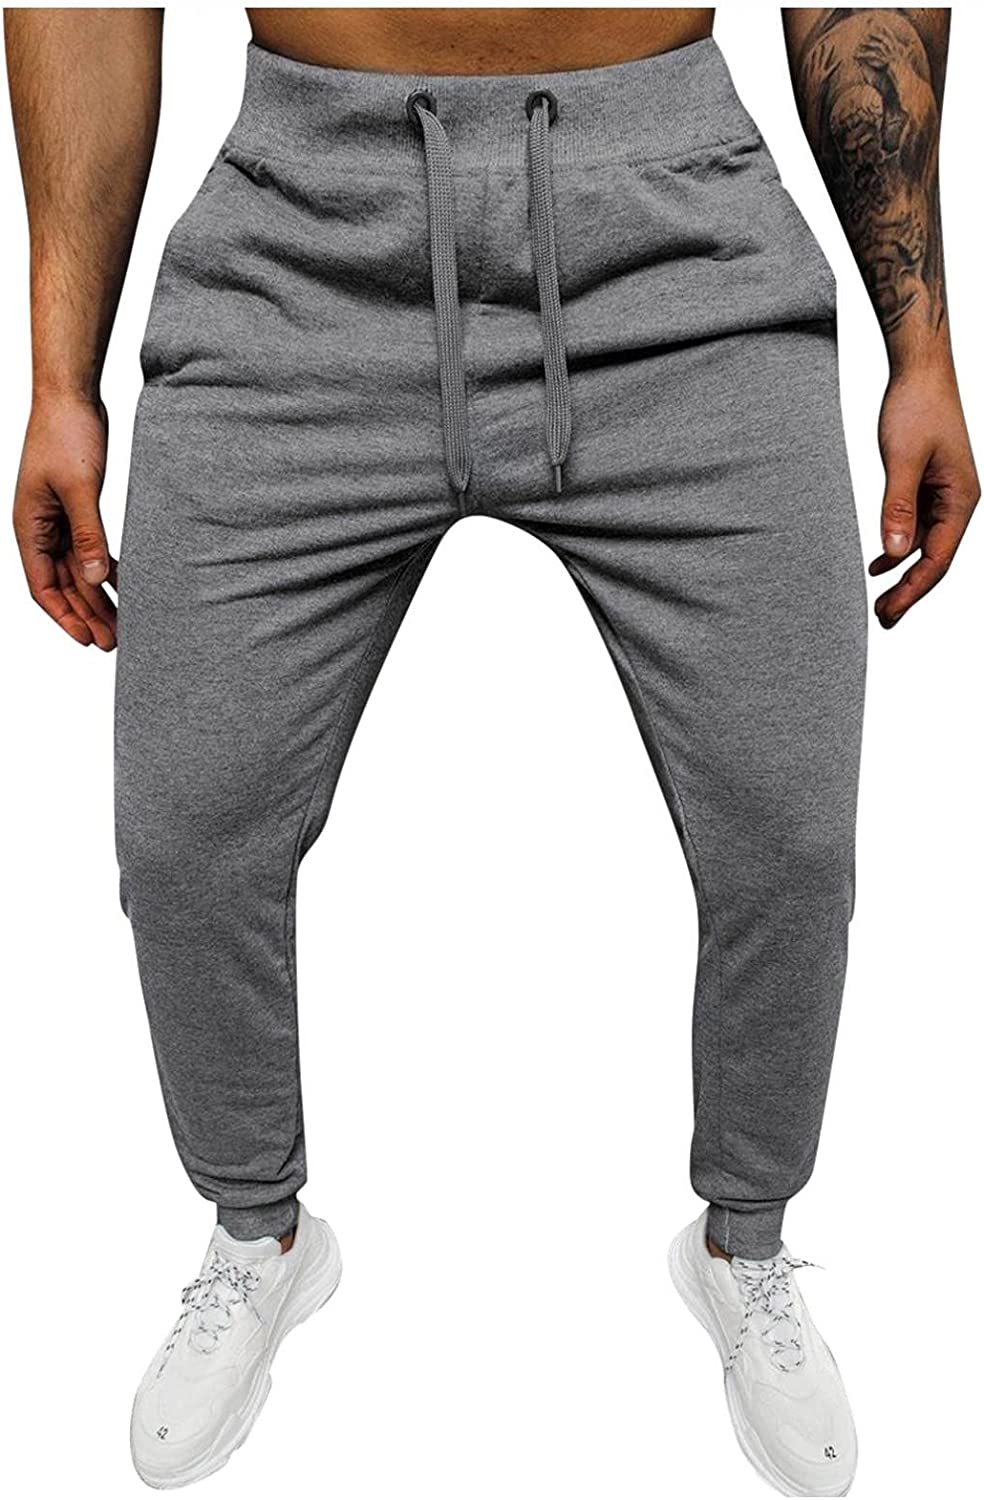 aihihe Mens Sweatpants Joggers with Pockets and Elastic Bottom Running Sweatpants Pants Workout Sports Jogger Lounge